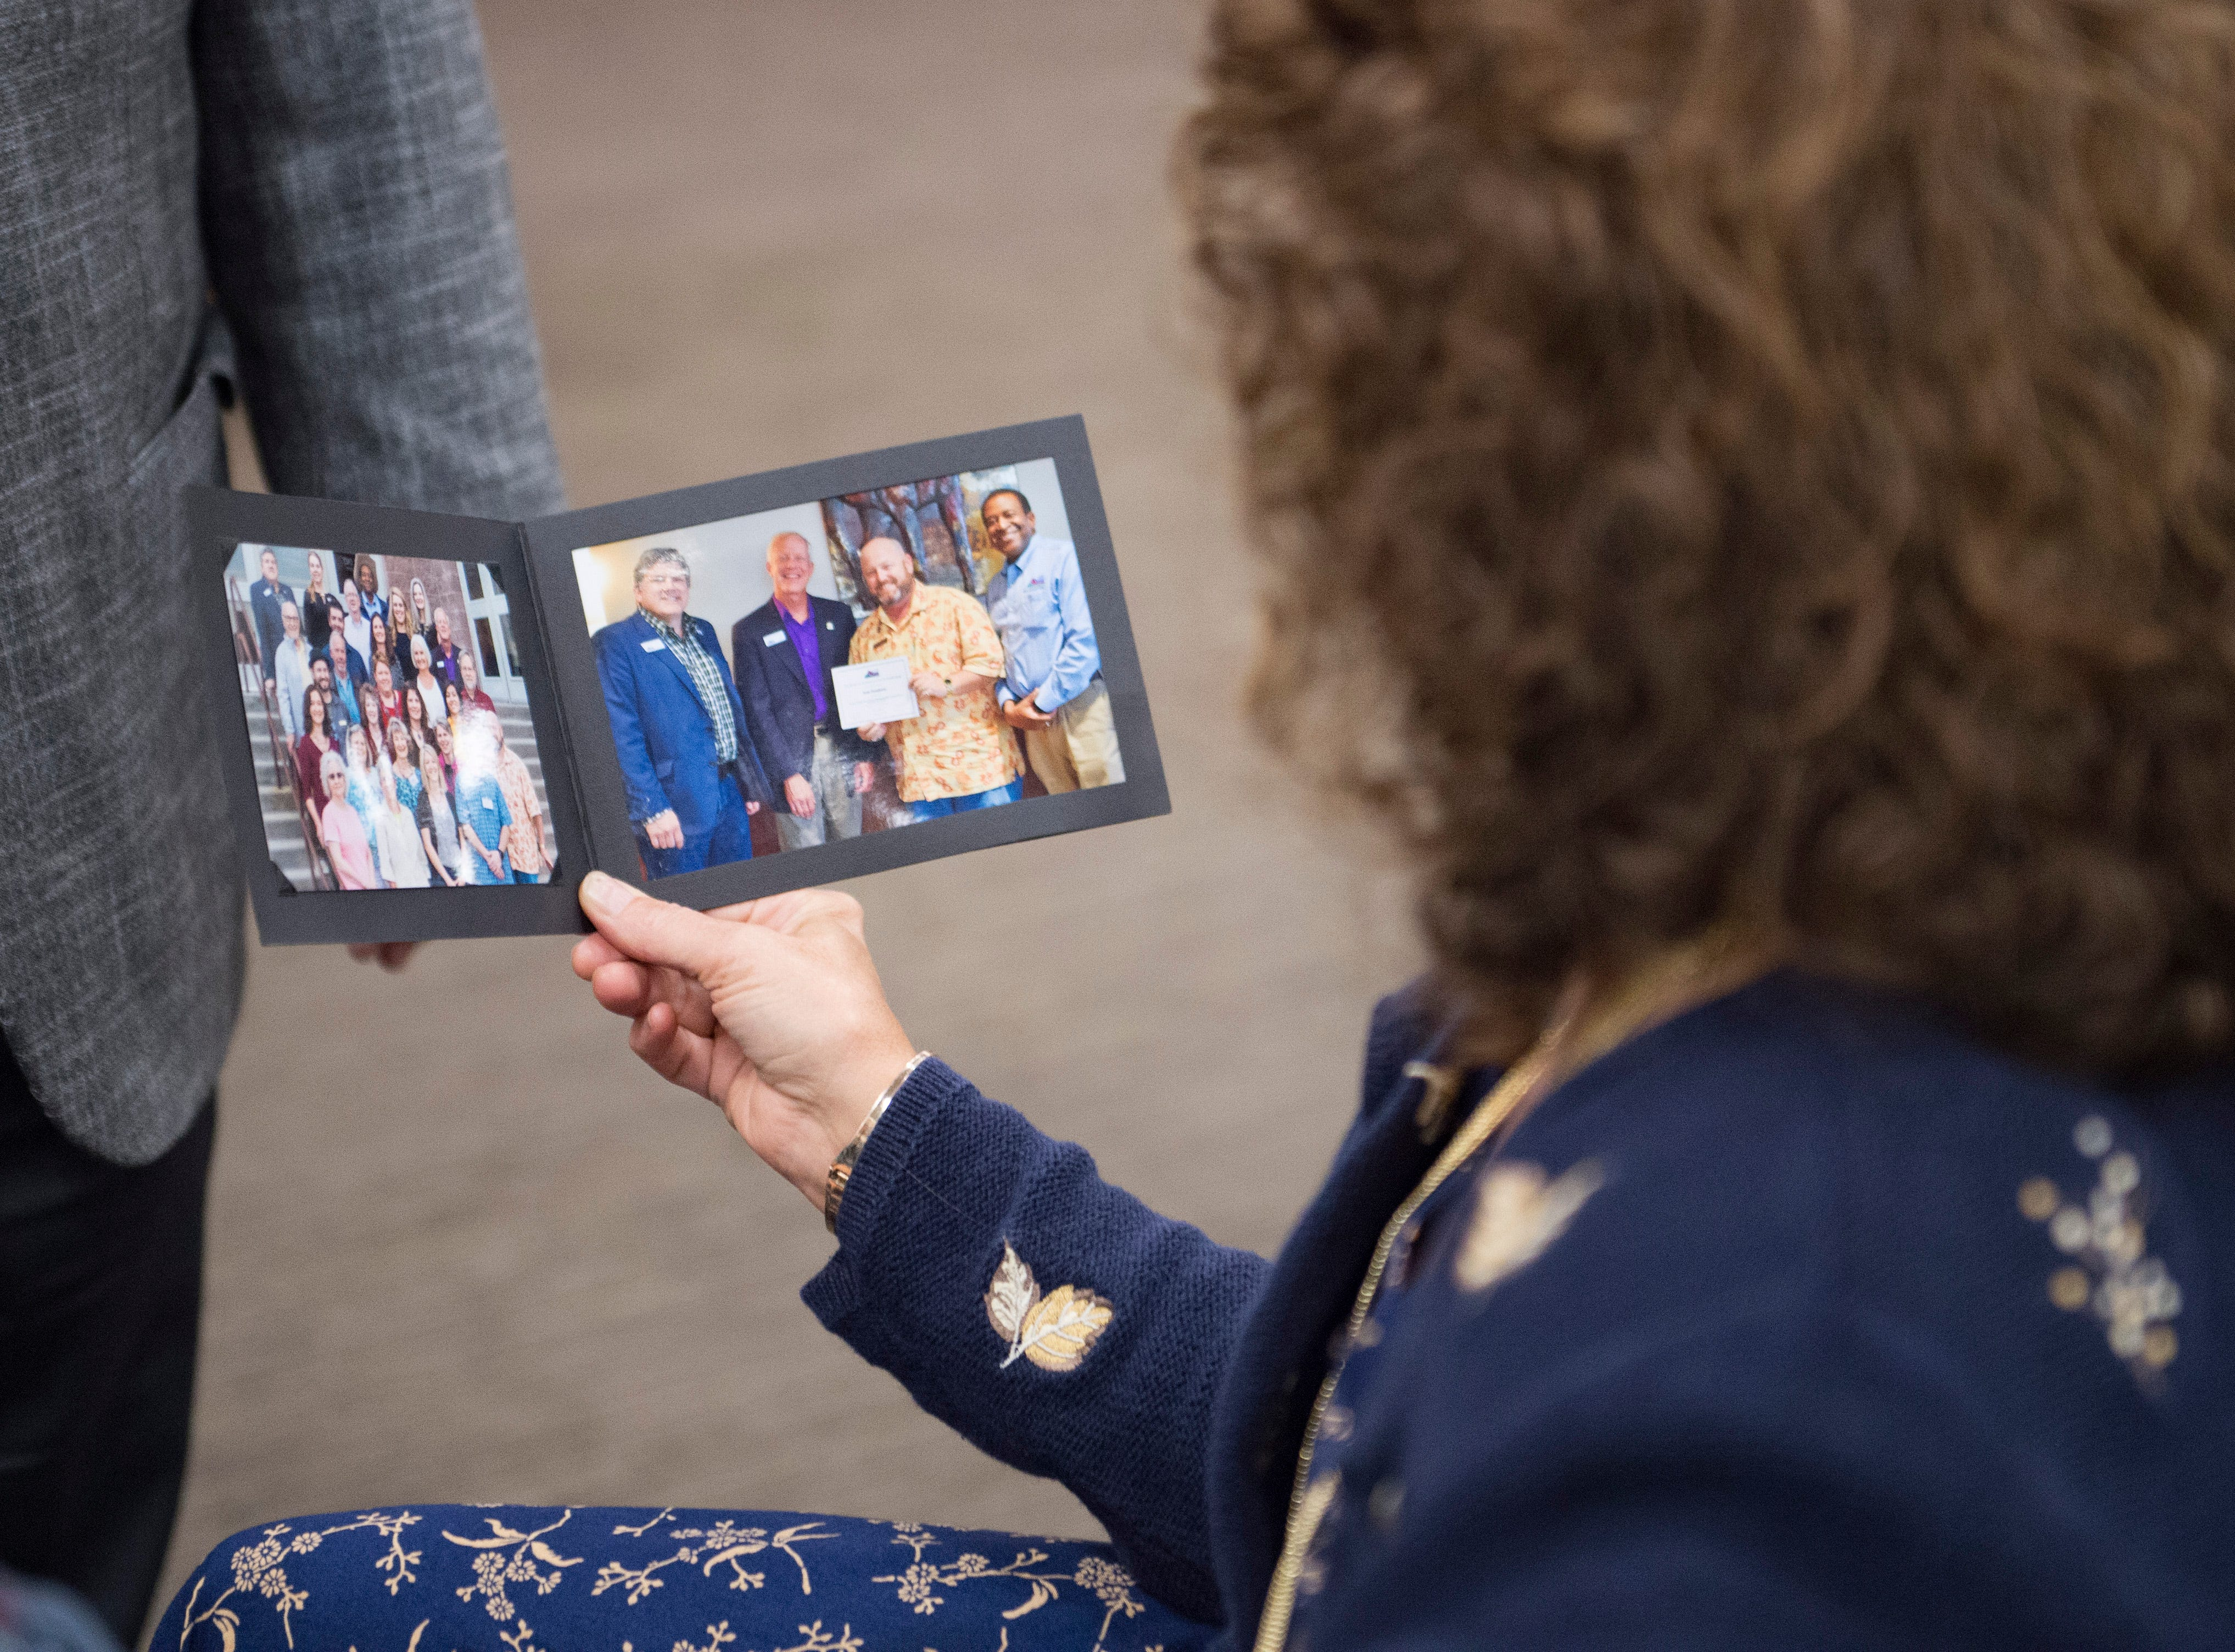 Jeannette Gaiter looks at a photo of Sean Dougherty with her late husband, Lew, before Dougherty is sworn in as Larimer County Commissioner on Friday, September 28, 2018. Dougherty was appointed to the position in the vacancy left by Lew Gaiter III after his death on September 18.